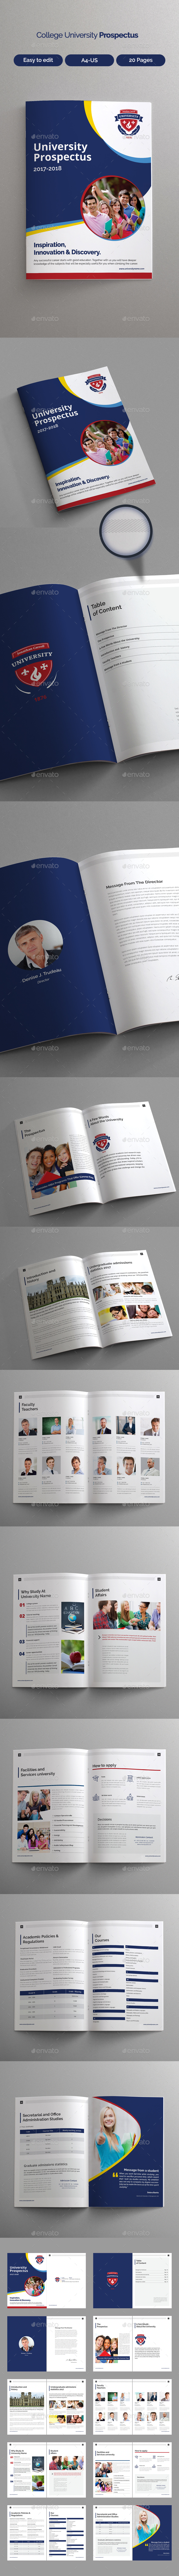 GraphicRiver College University Prospectus 21076041